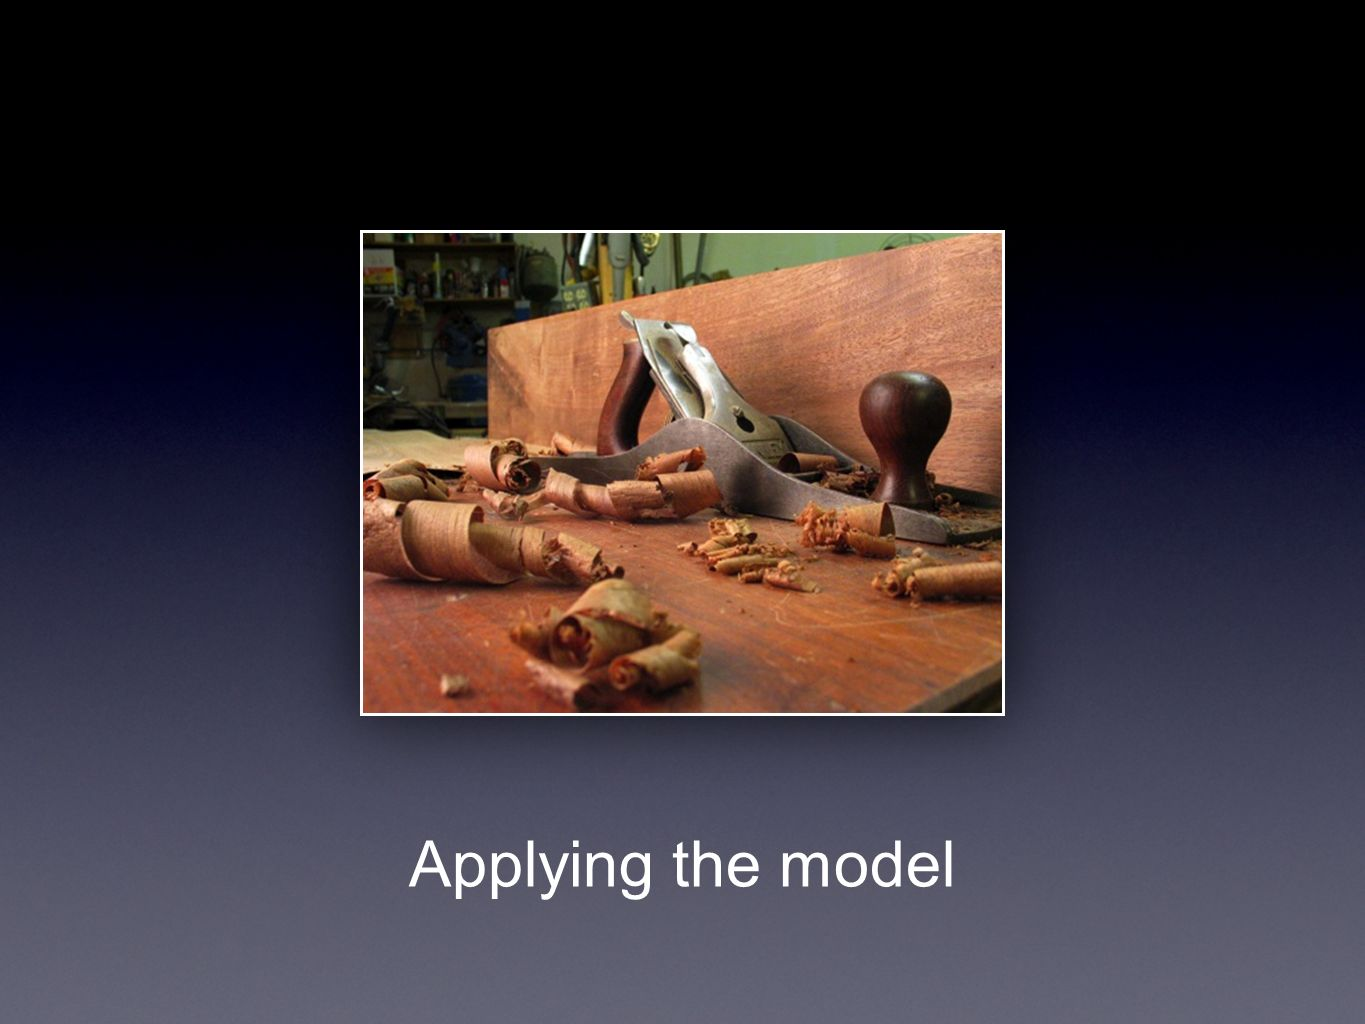 Applying the model